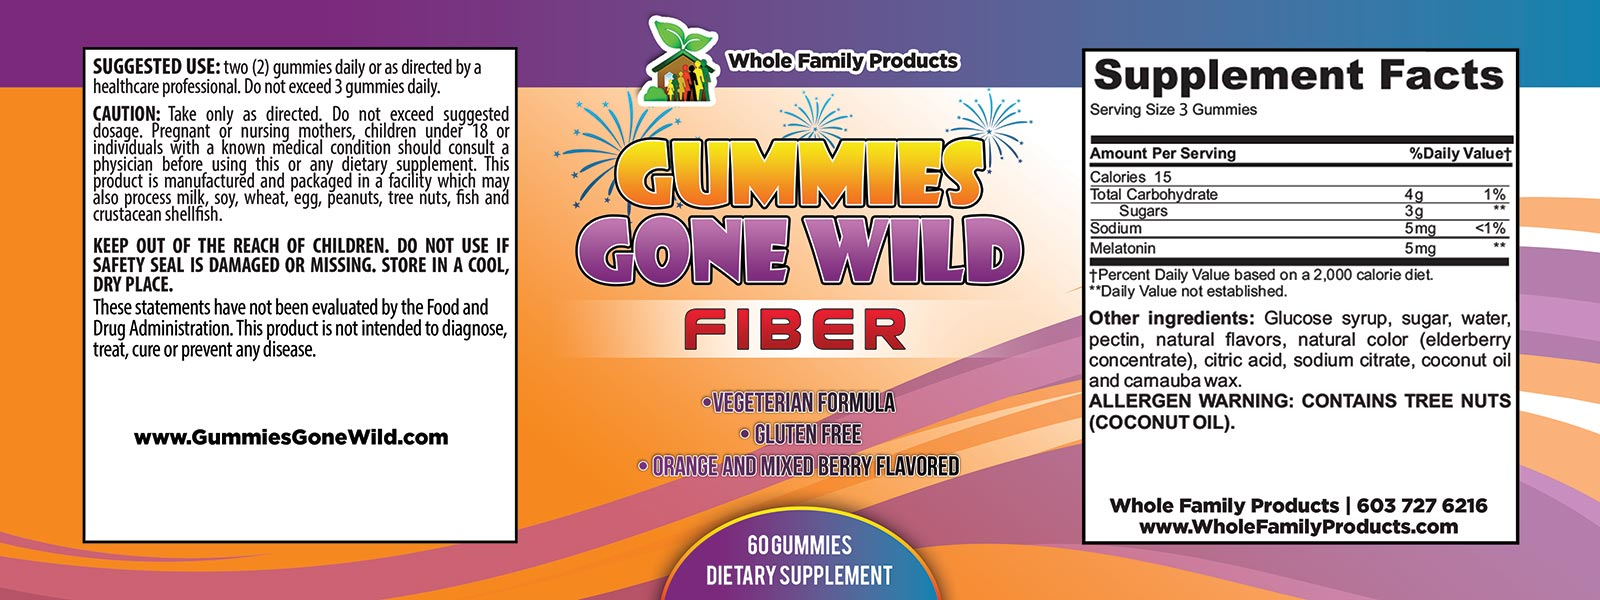 Gummies Gone Wild Fiber Label